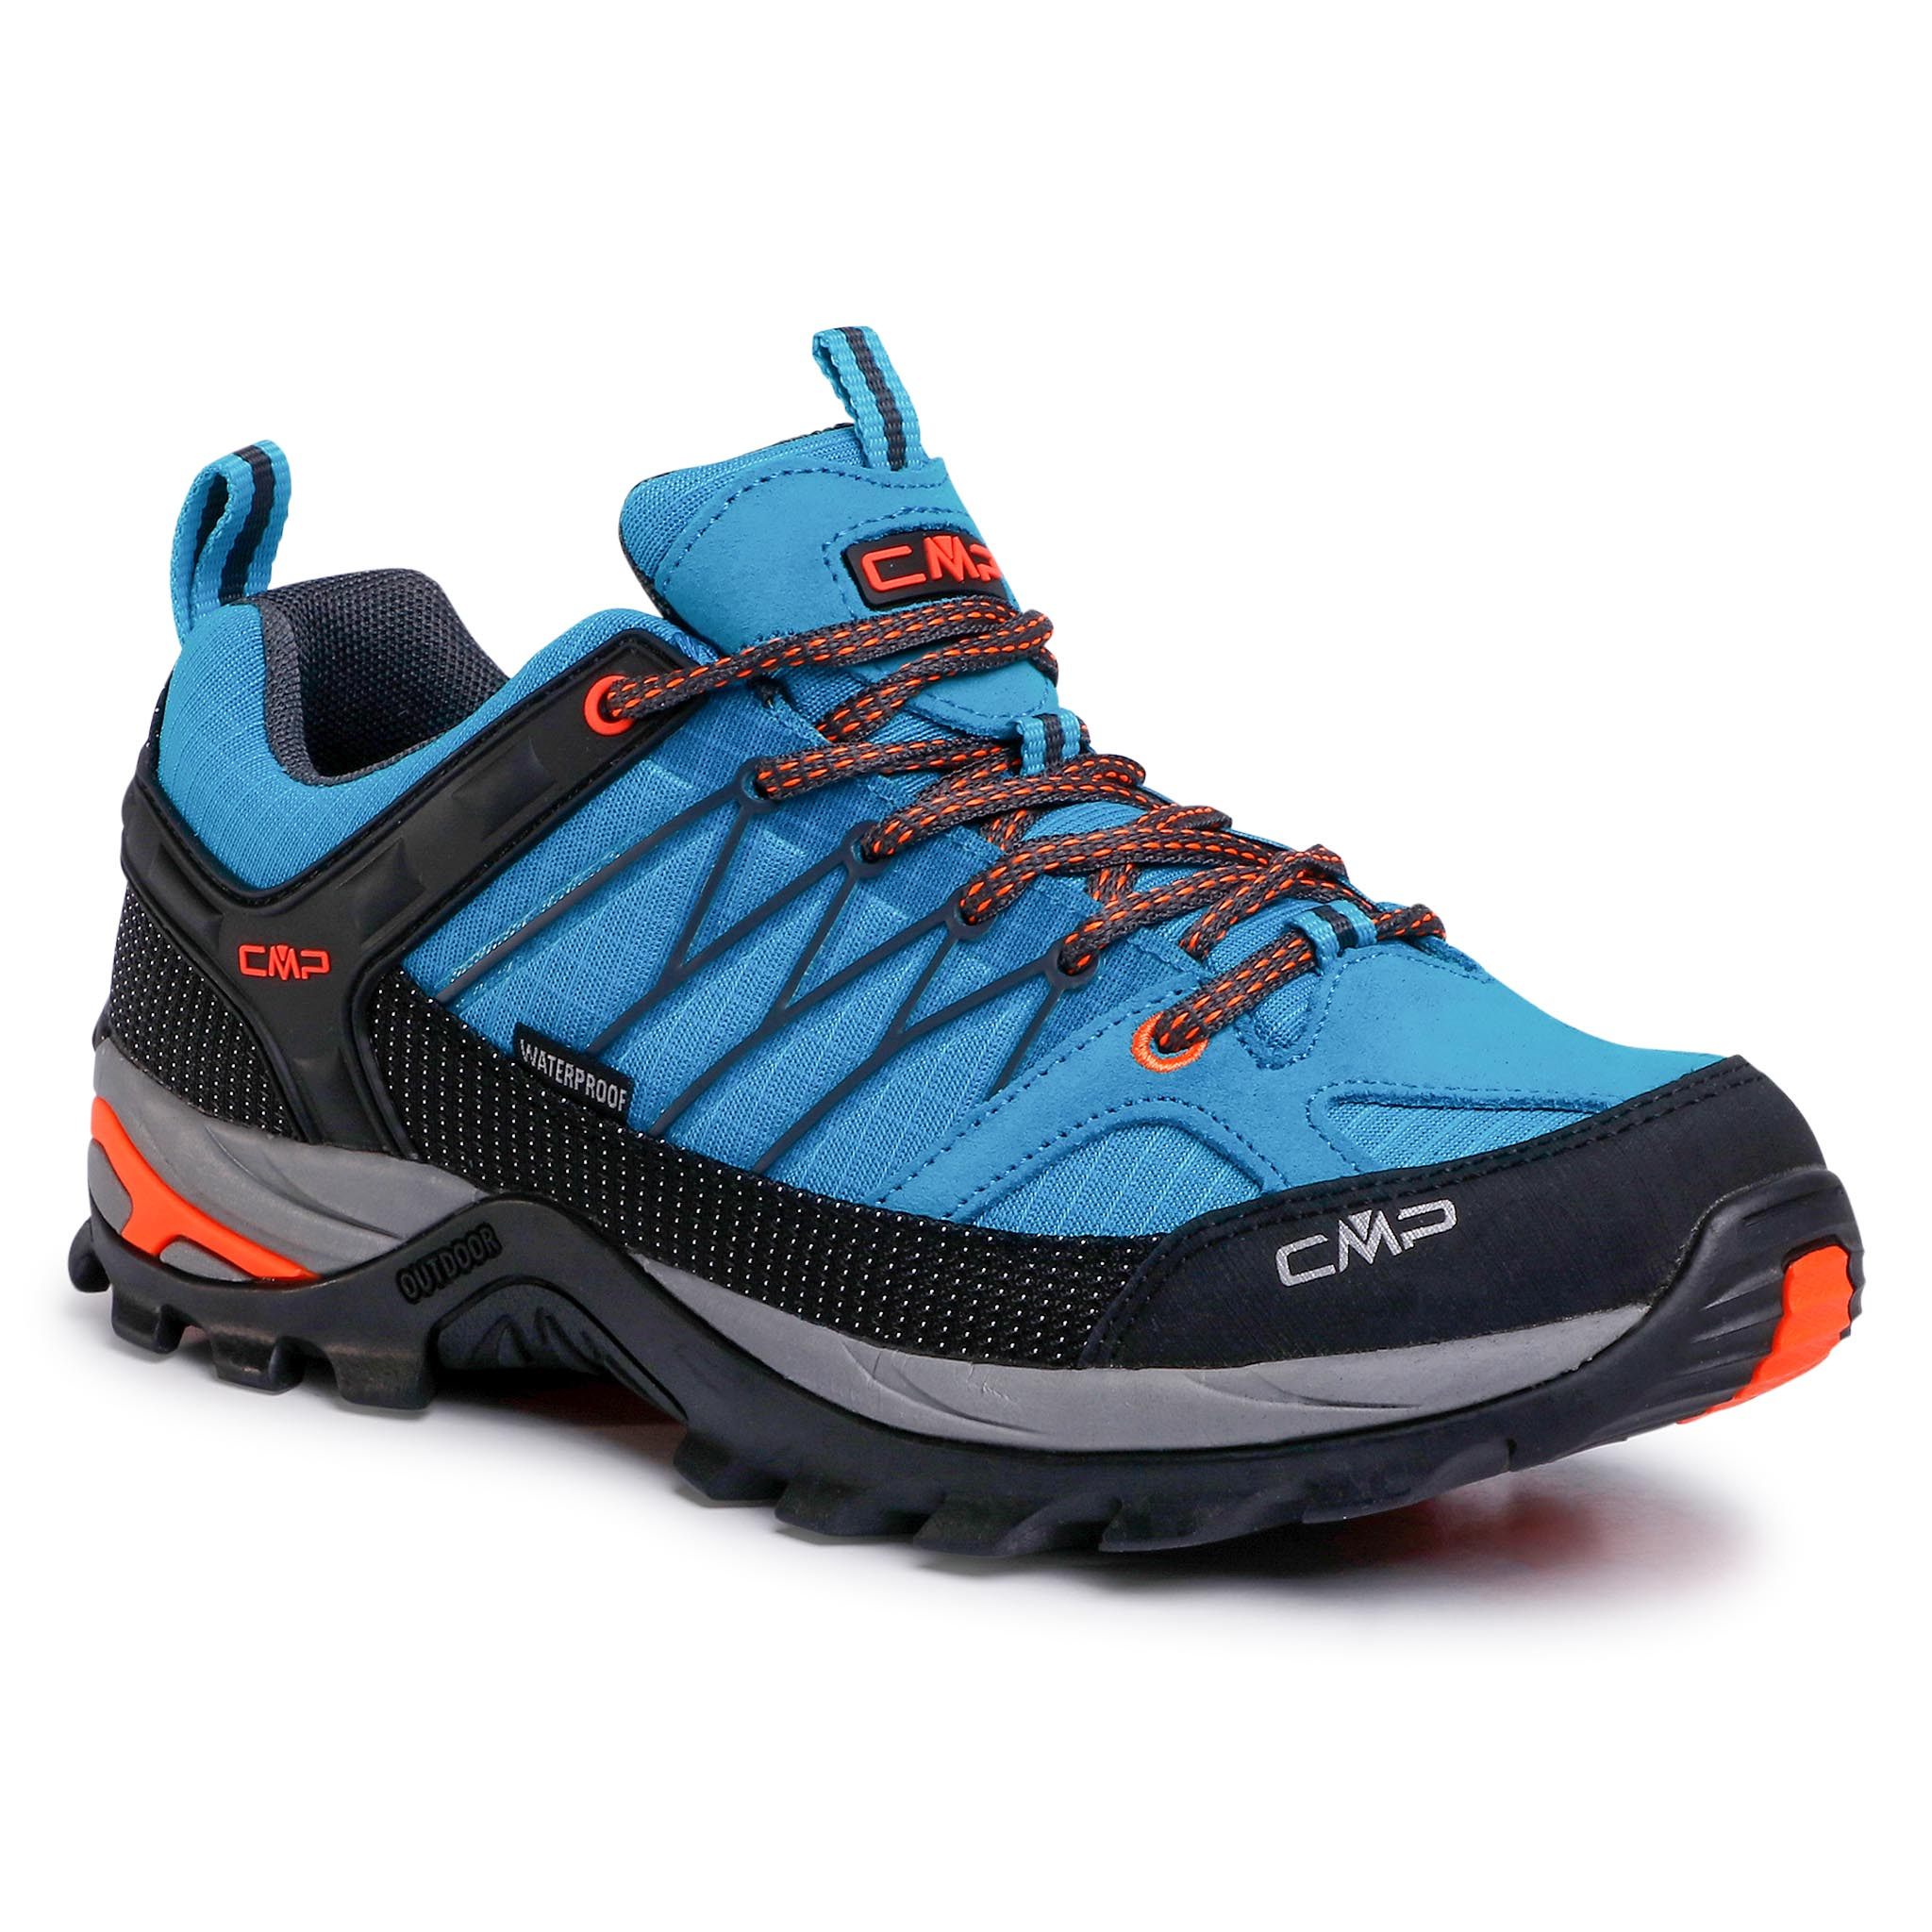 Trekkings Cmp - Rigel Low Trekking Shoe Wp 3q54457 Rif/Antracite 13le imagine epantofi.ro 2021